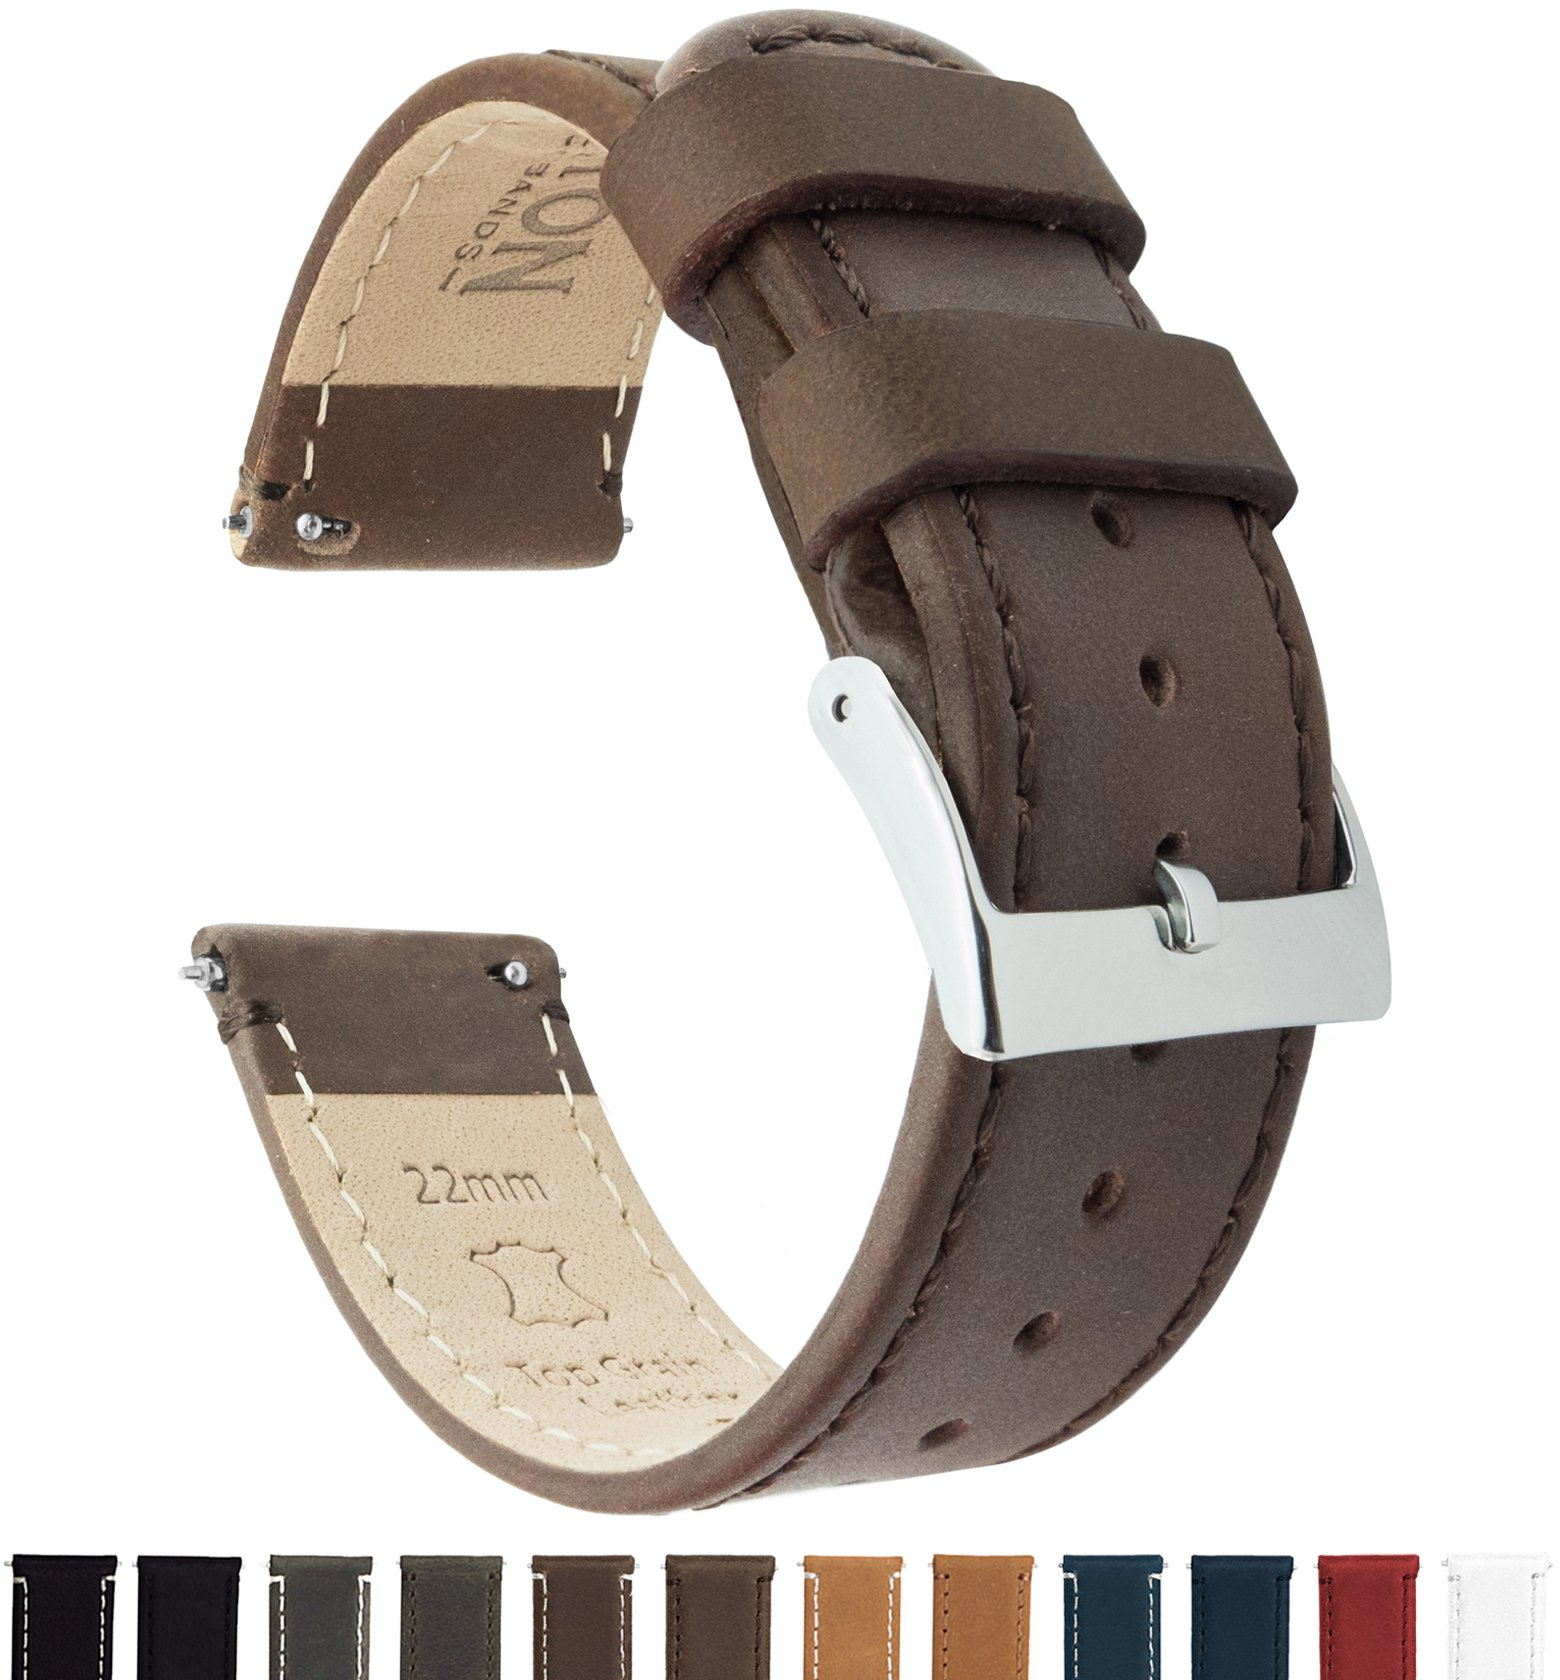 Barton Quick Release Top Grain Leather Watch Band Strap - Choose Color & Width (18mm, 20mm or 22mm) - Saddle Brown 20mm by Barton Watch Bands (Image #1)